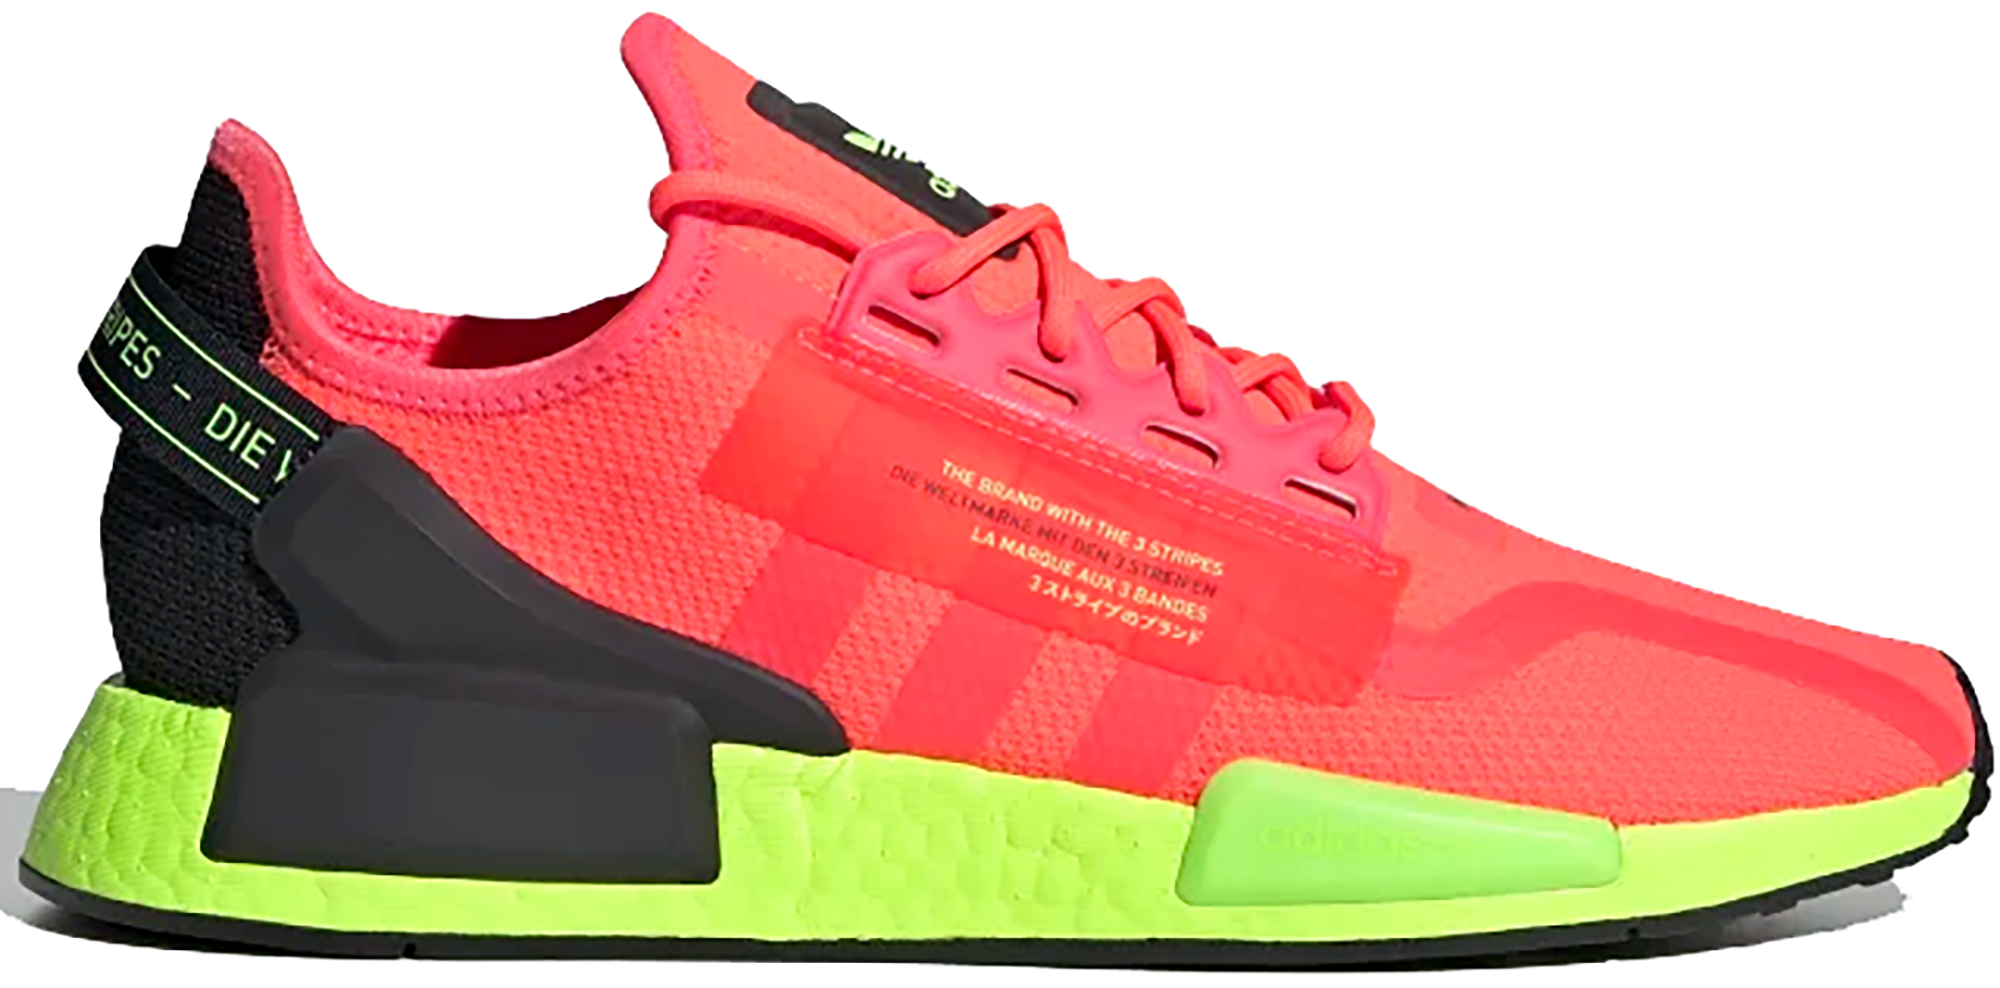 adidas NMD R1 V2 Watermelon Pack Pink